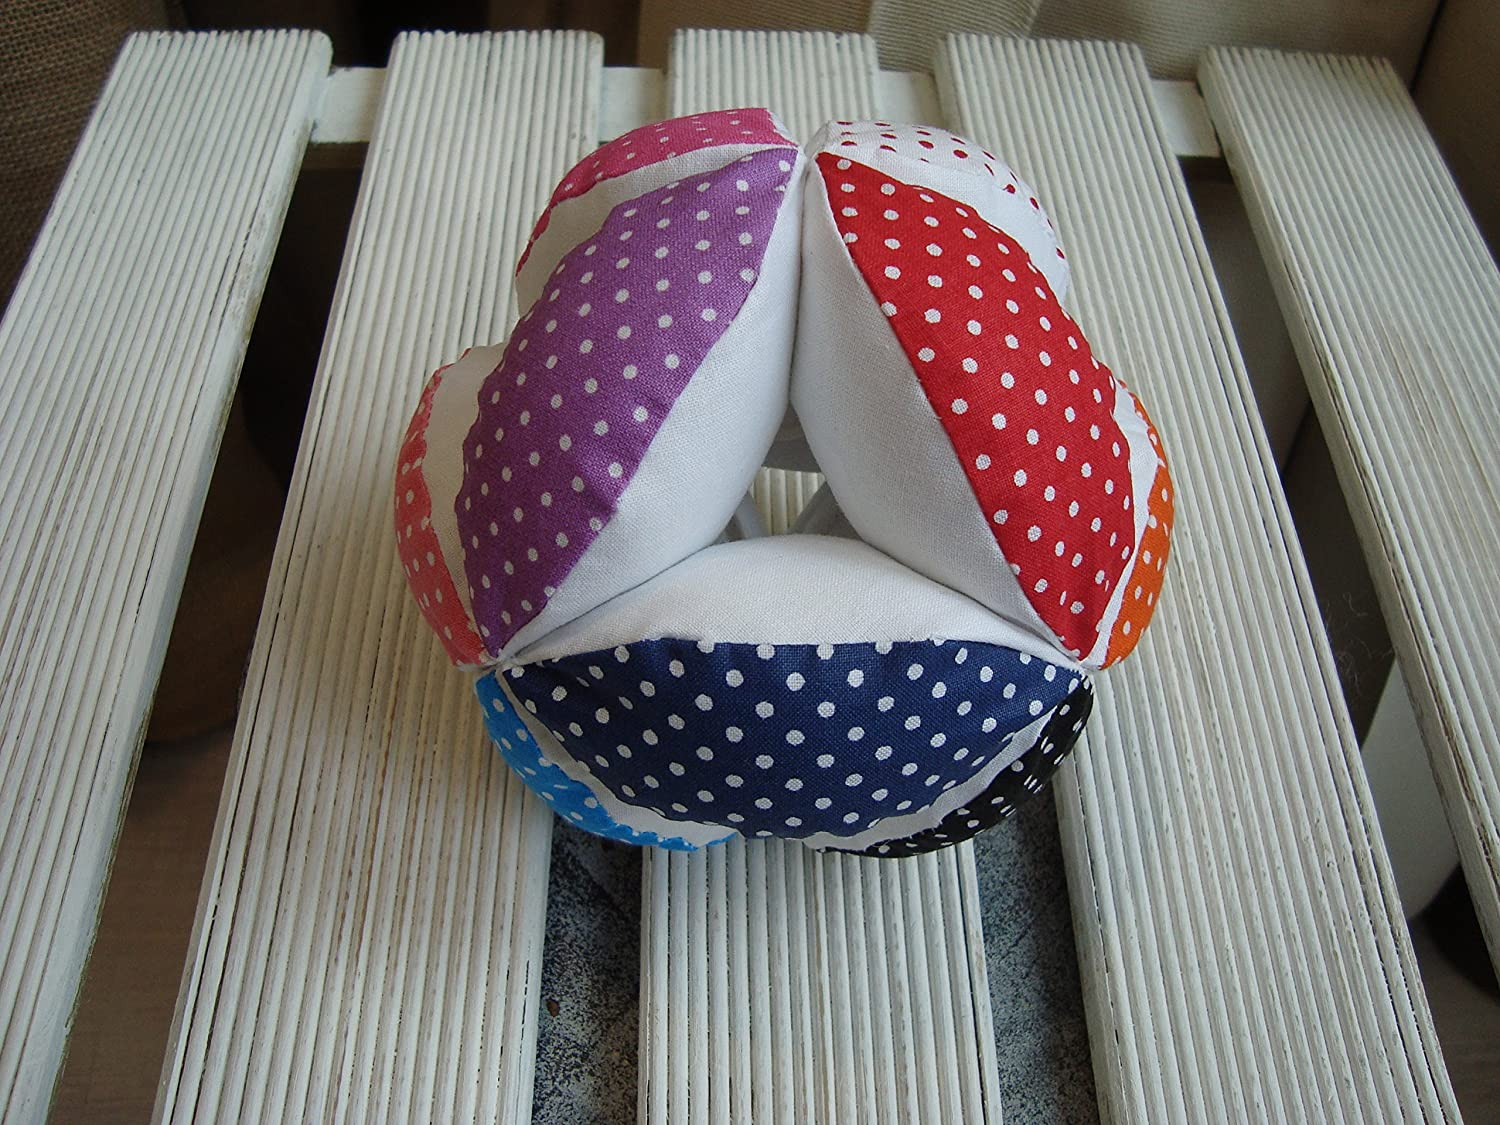 Puzzle ball, Montessori baby toy, fabric ball